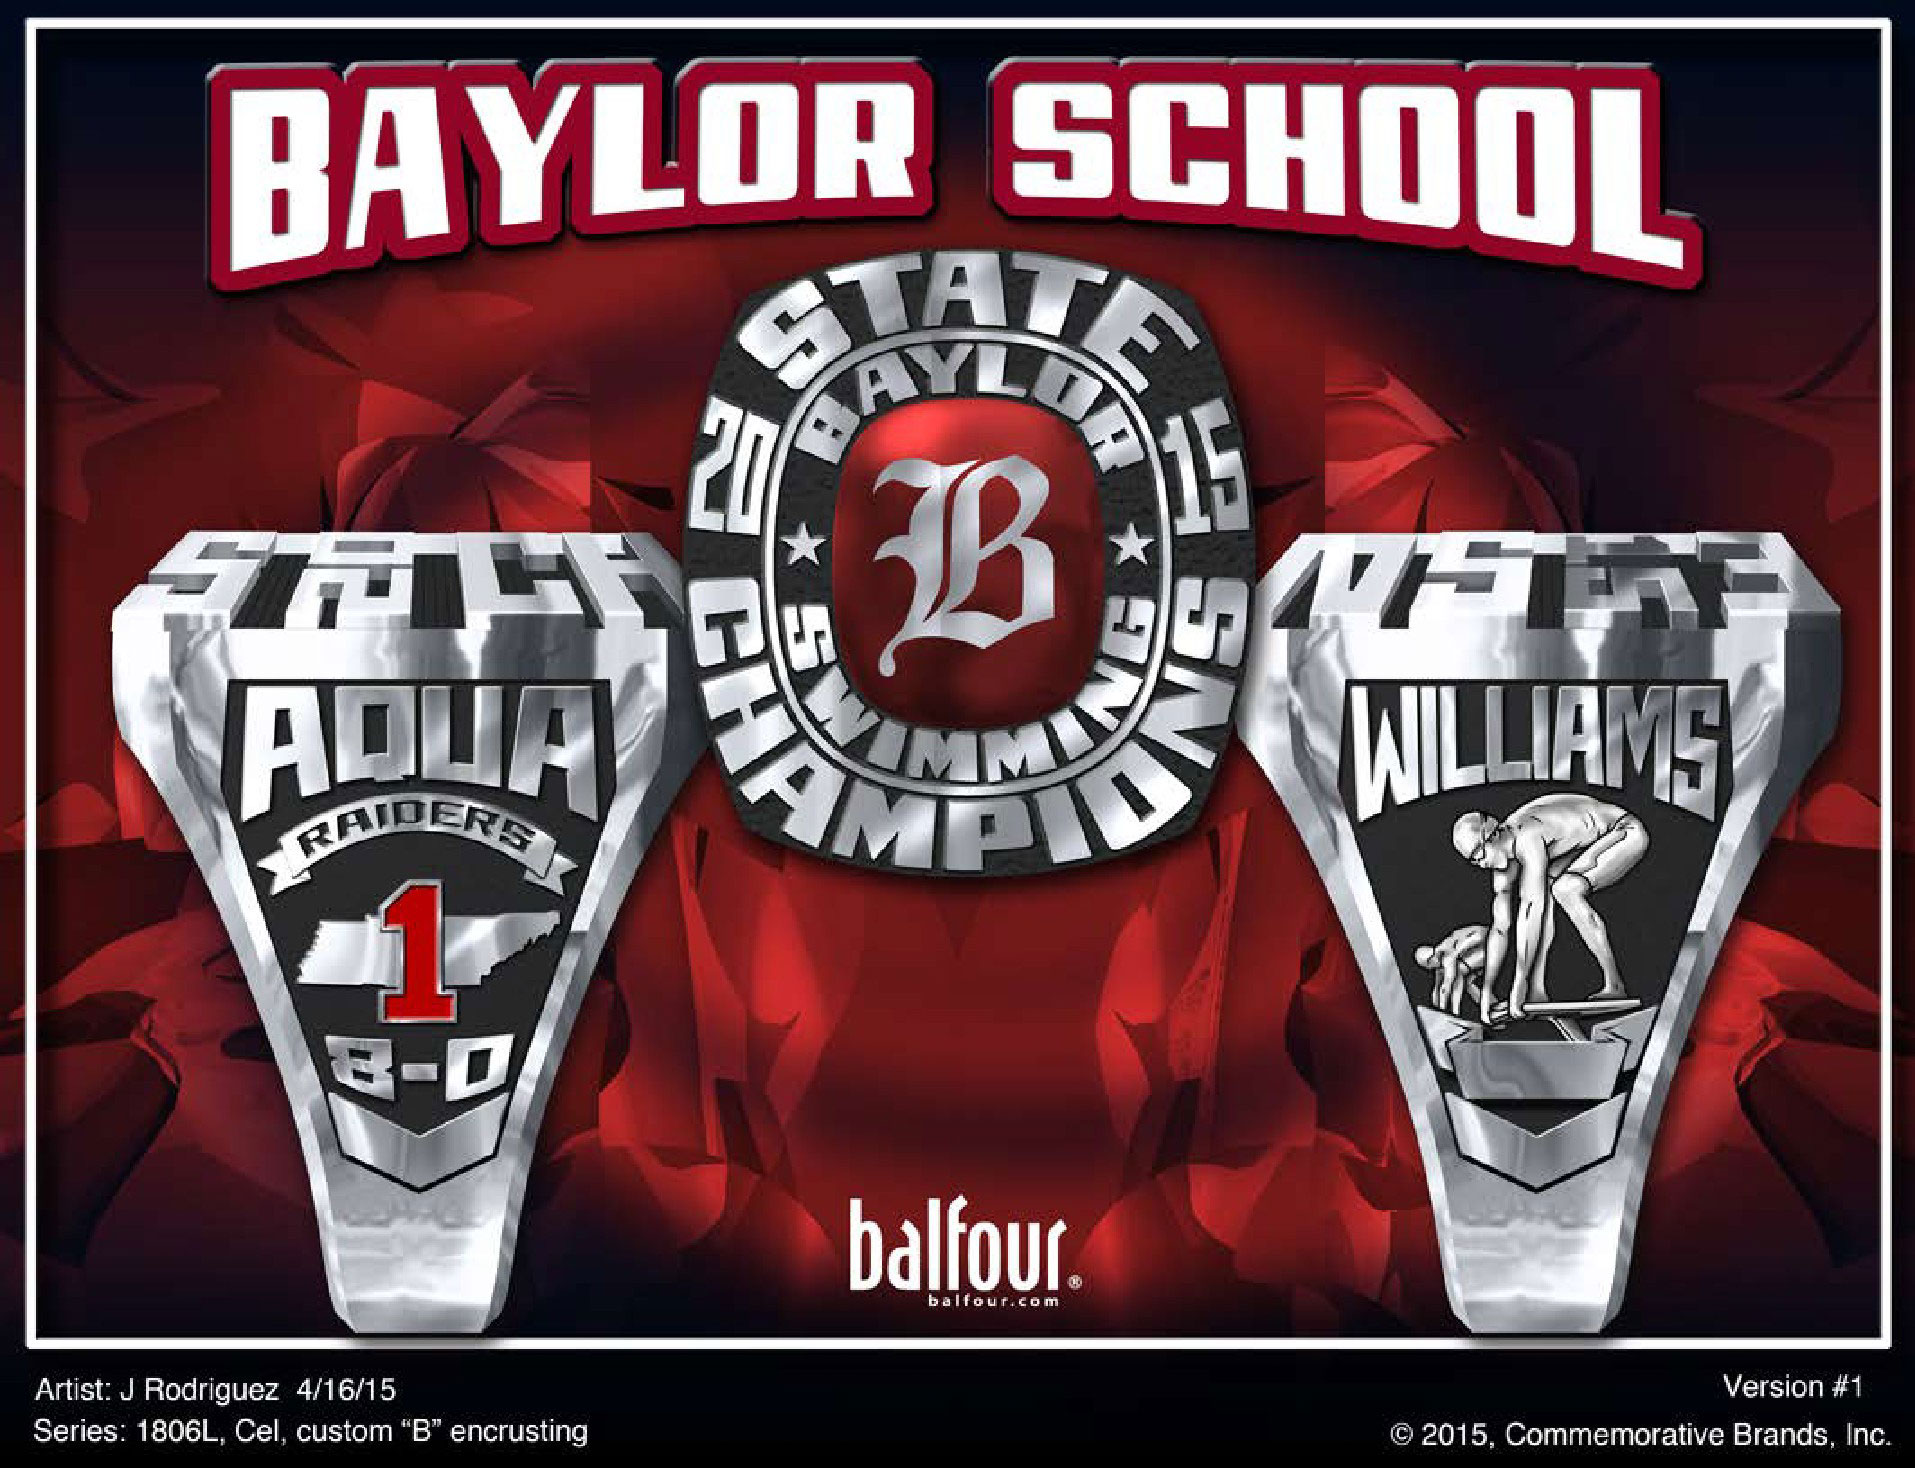 Swimming Baylor high school championship rings